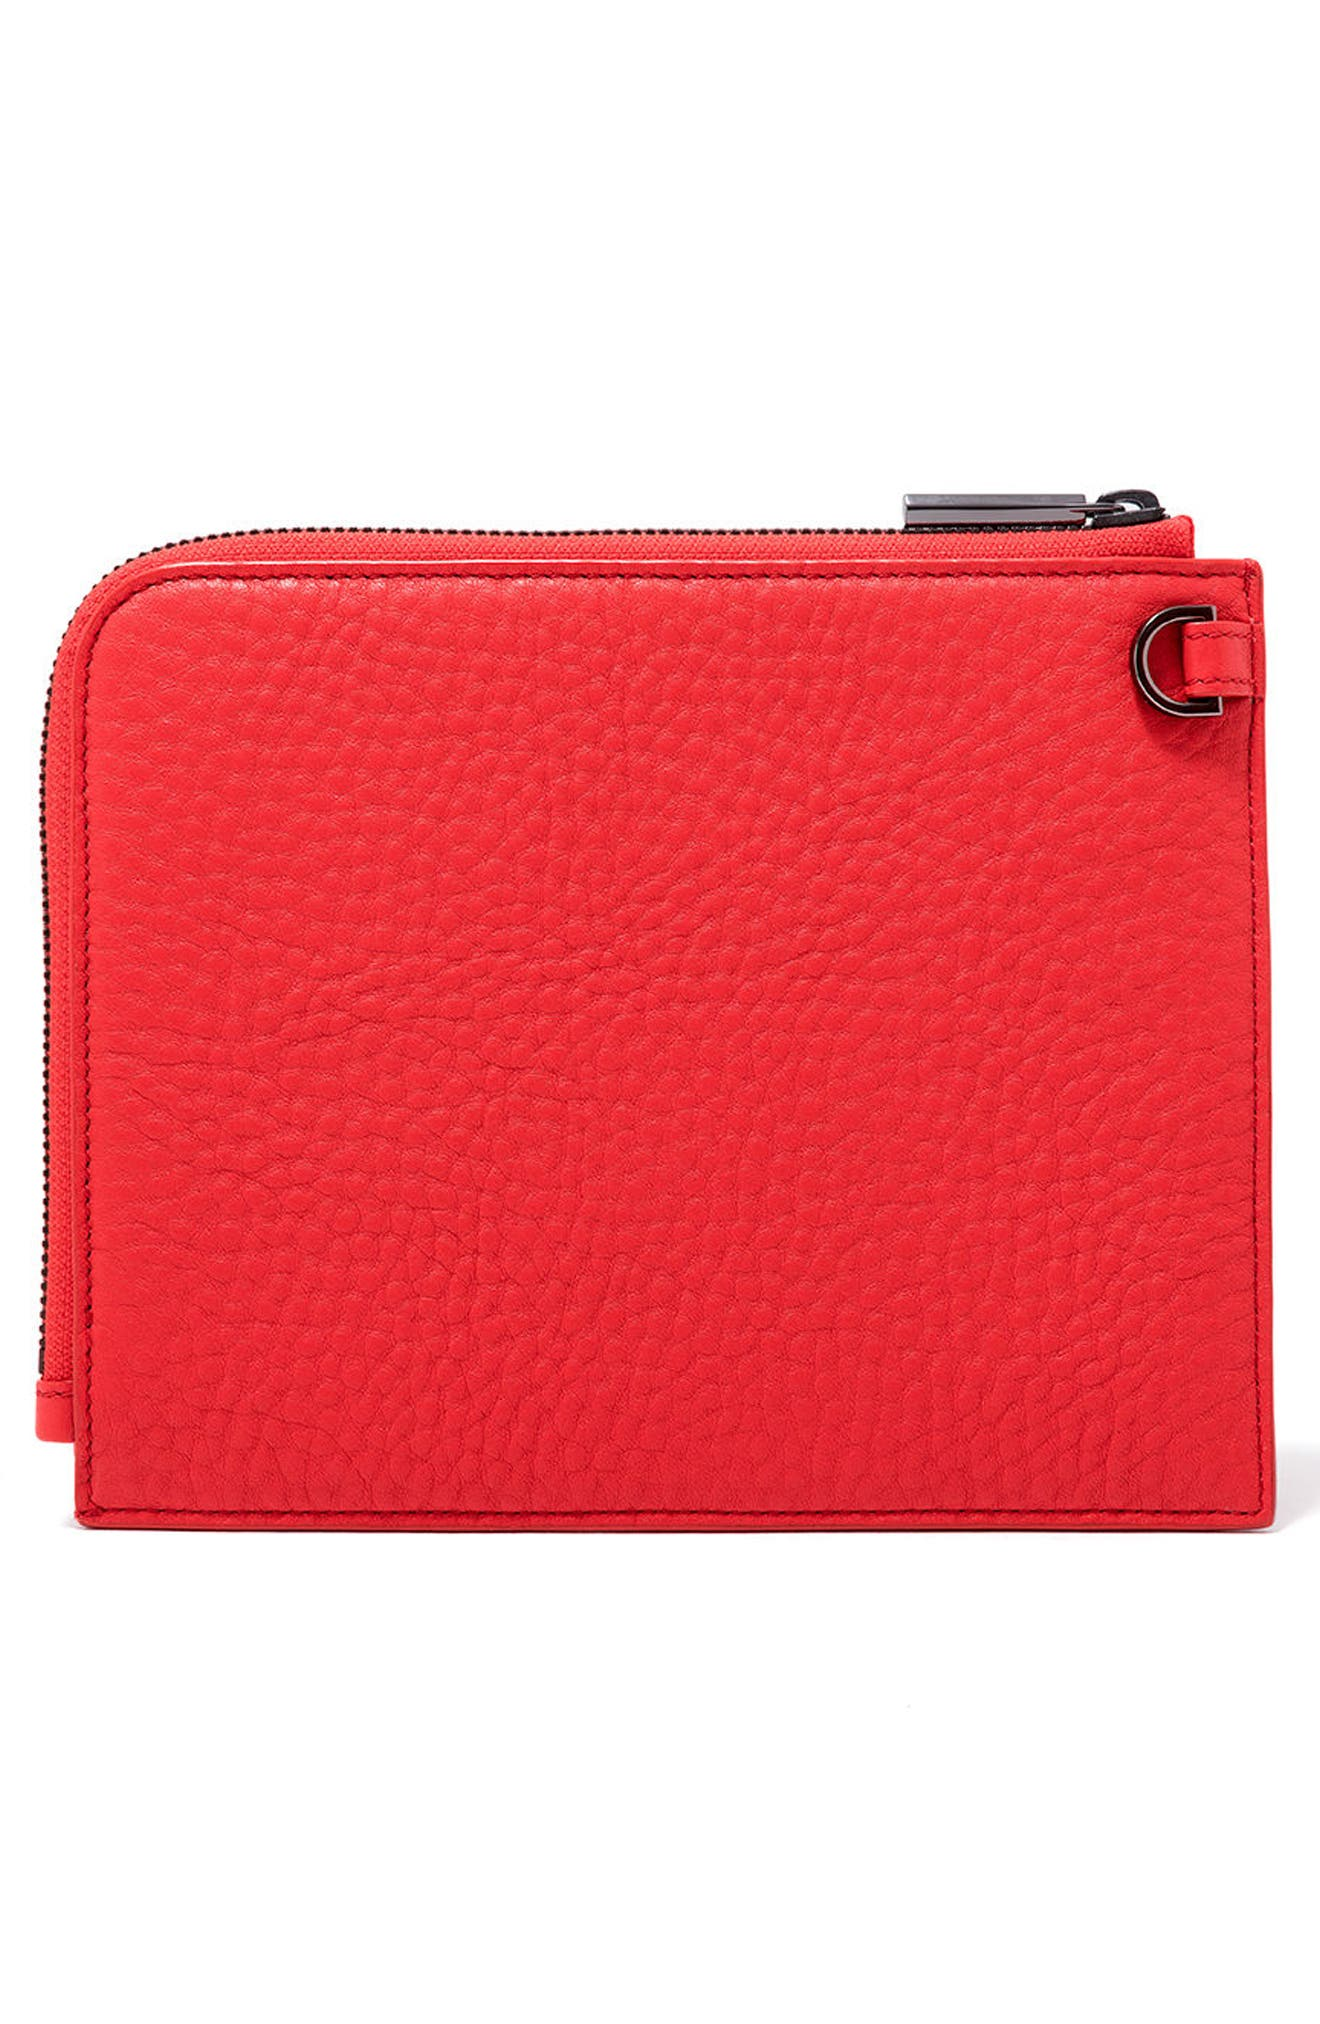 Small Elle Leather Clutch,                             Alternate thumbnail 14, color,